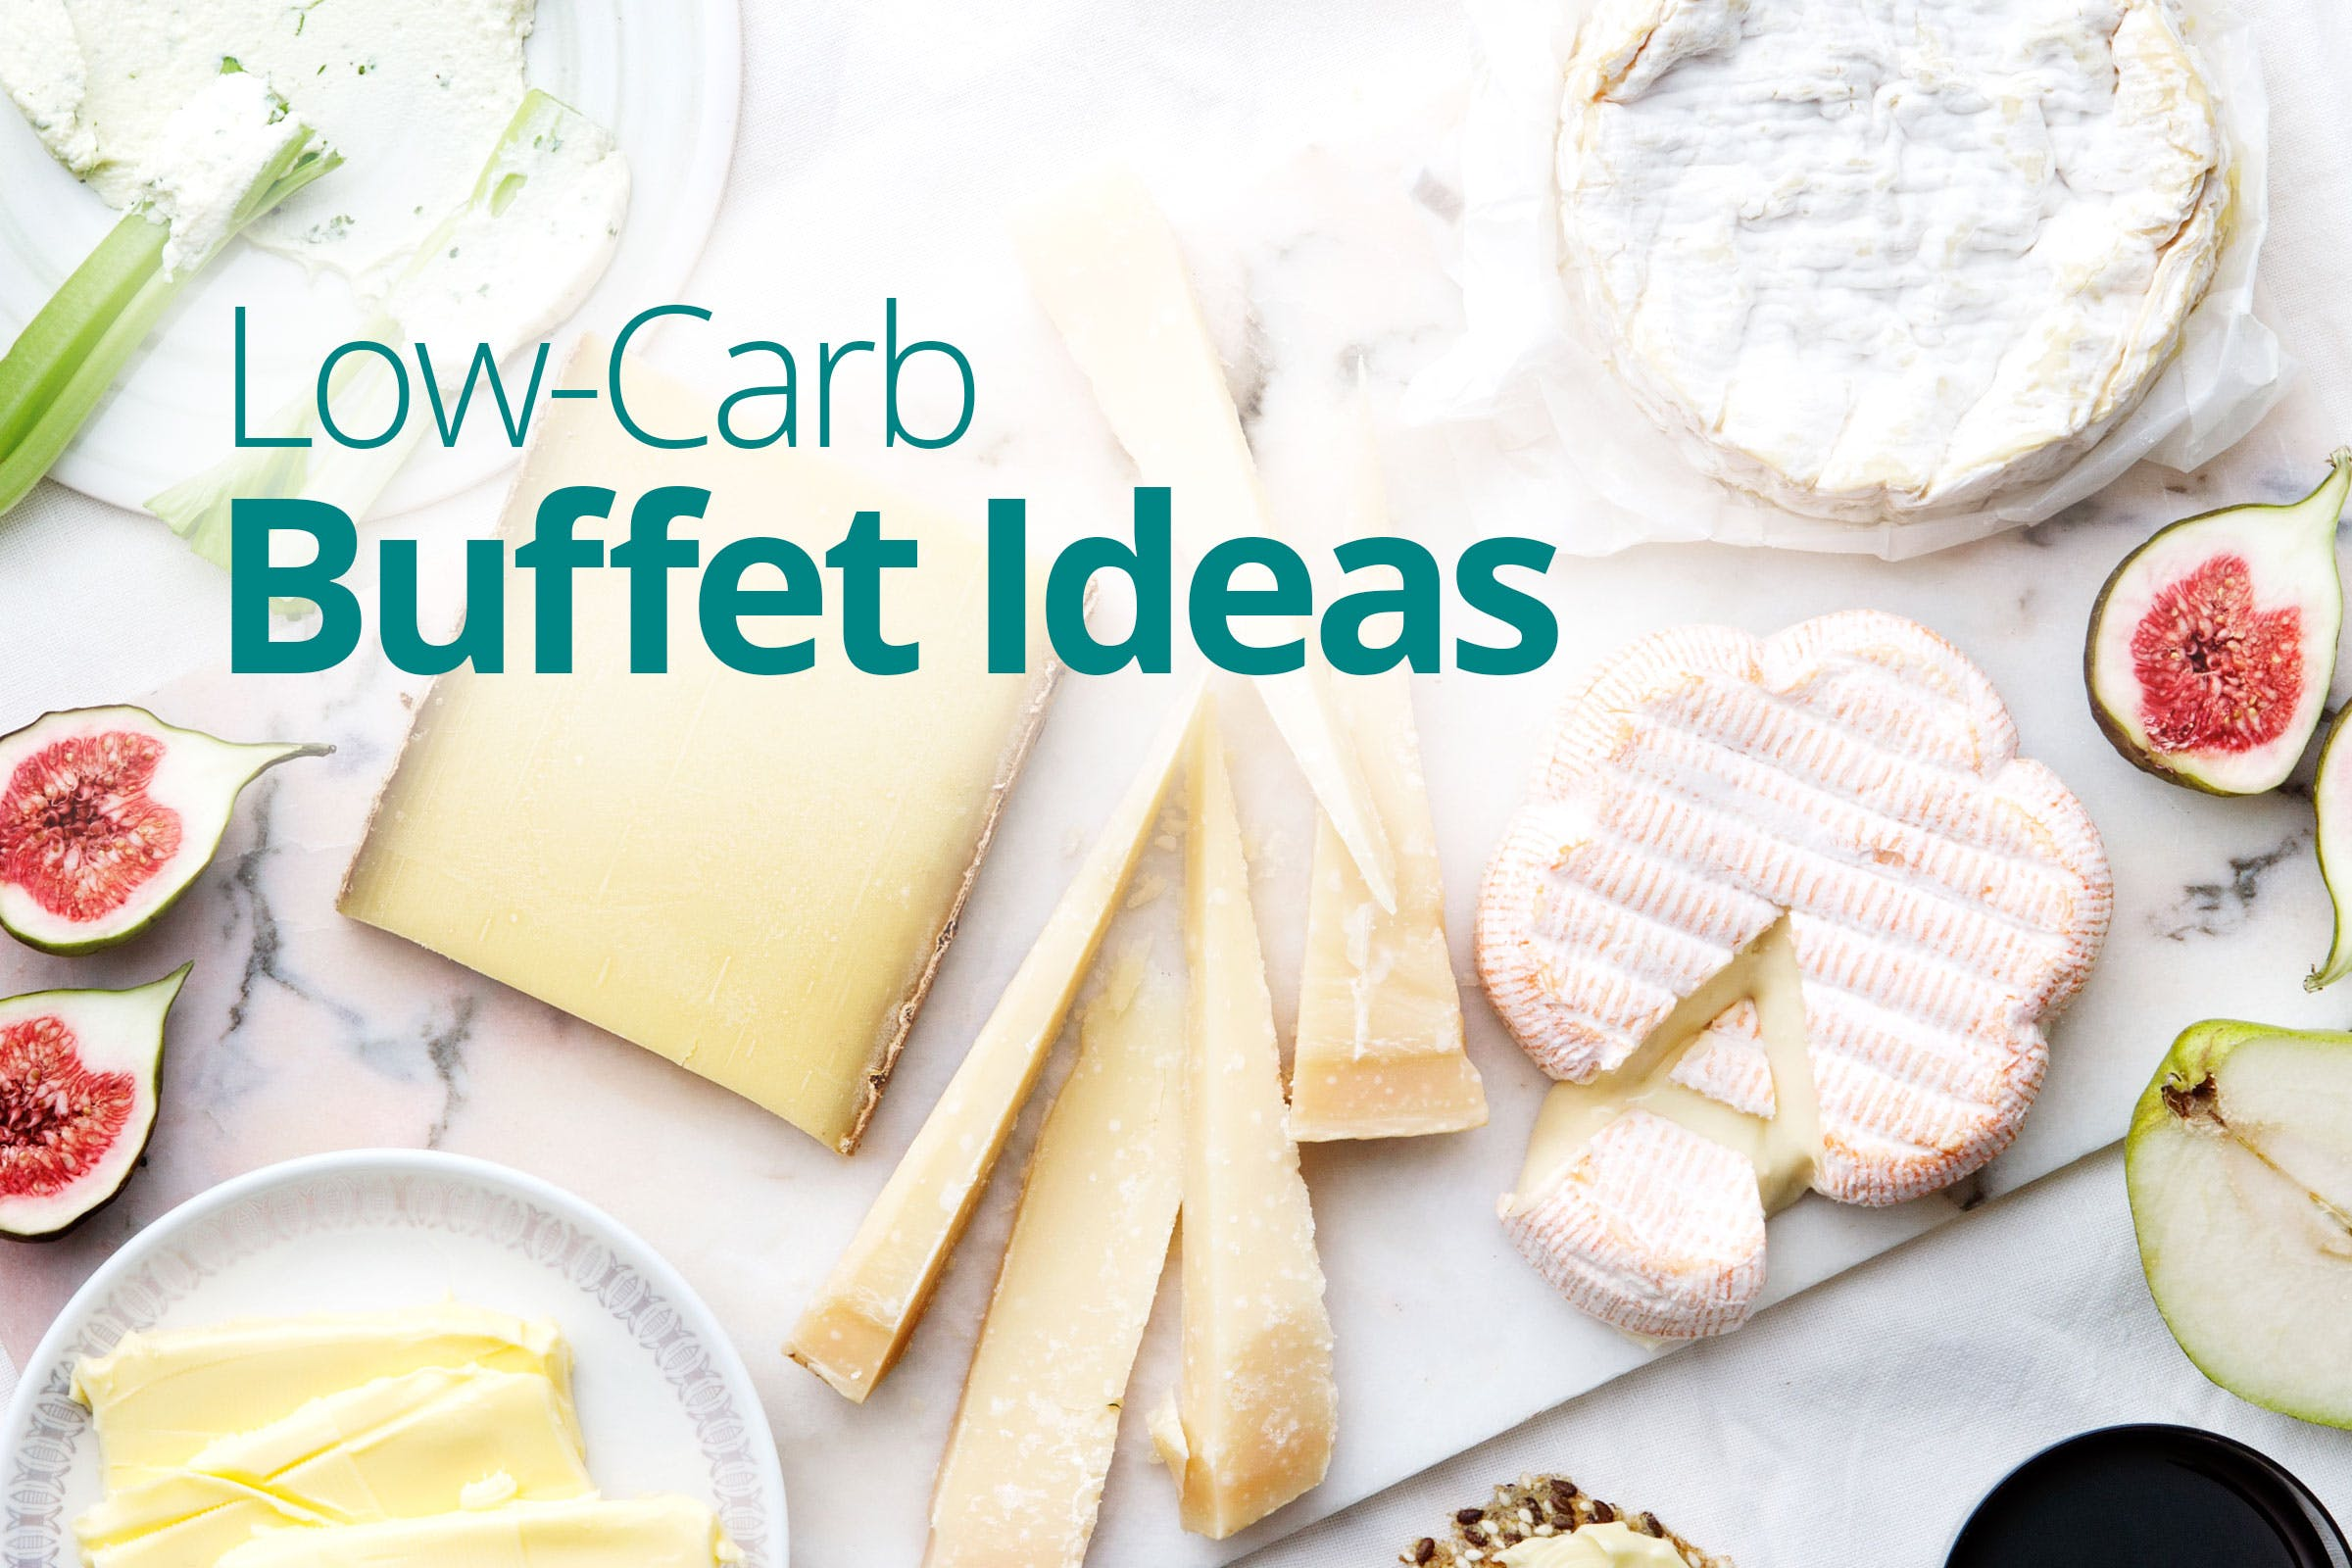 Need inspiration for low-carb entertaining?